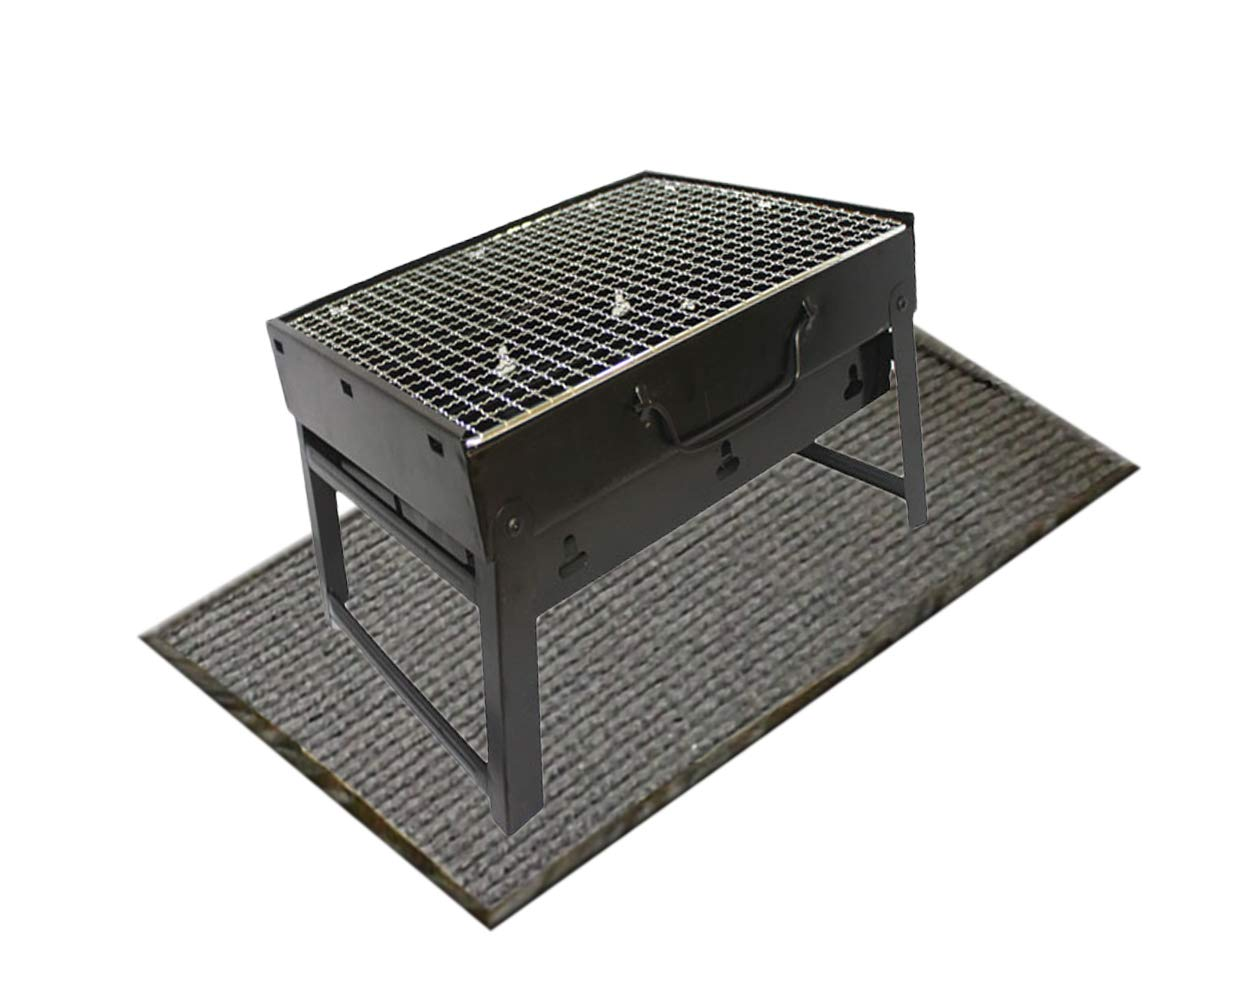 Coisound 1688 Grill Mat Gas Electric Grill,59''x 39.3'' x 0.236'' Extra Large Grill Pad,Lightweight Washable Floor Mat to Protect Decks from Grease Splatter